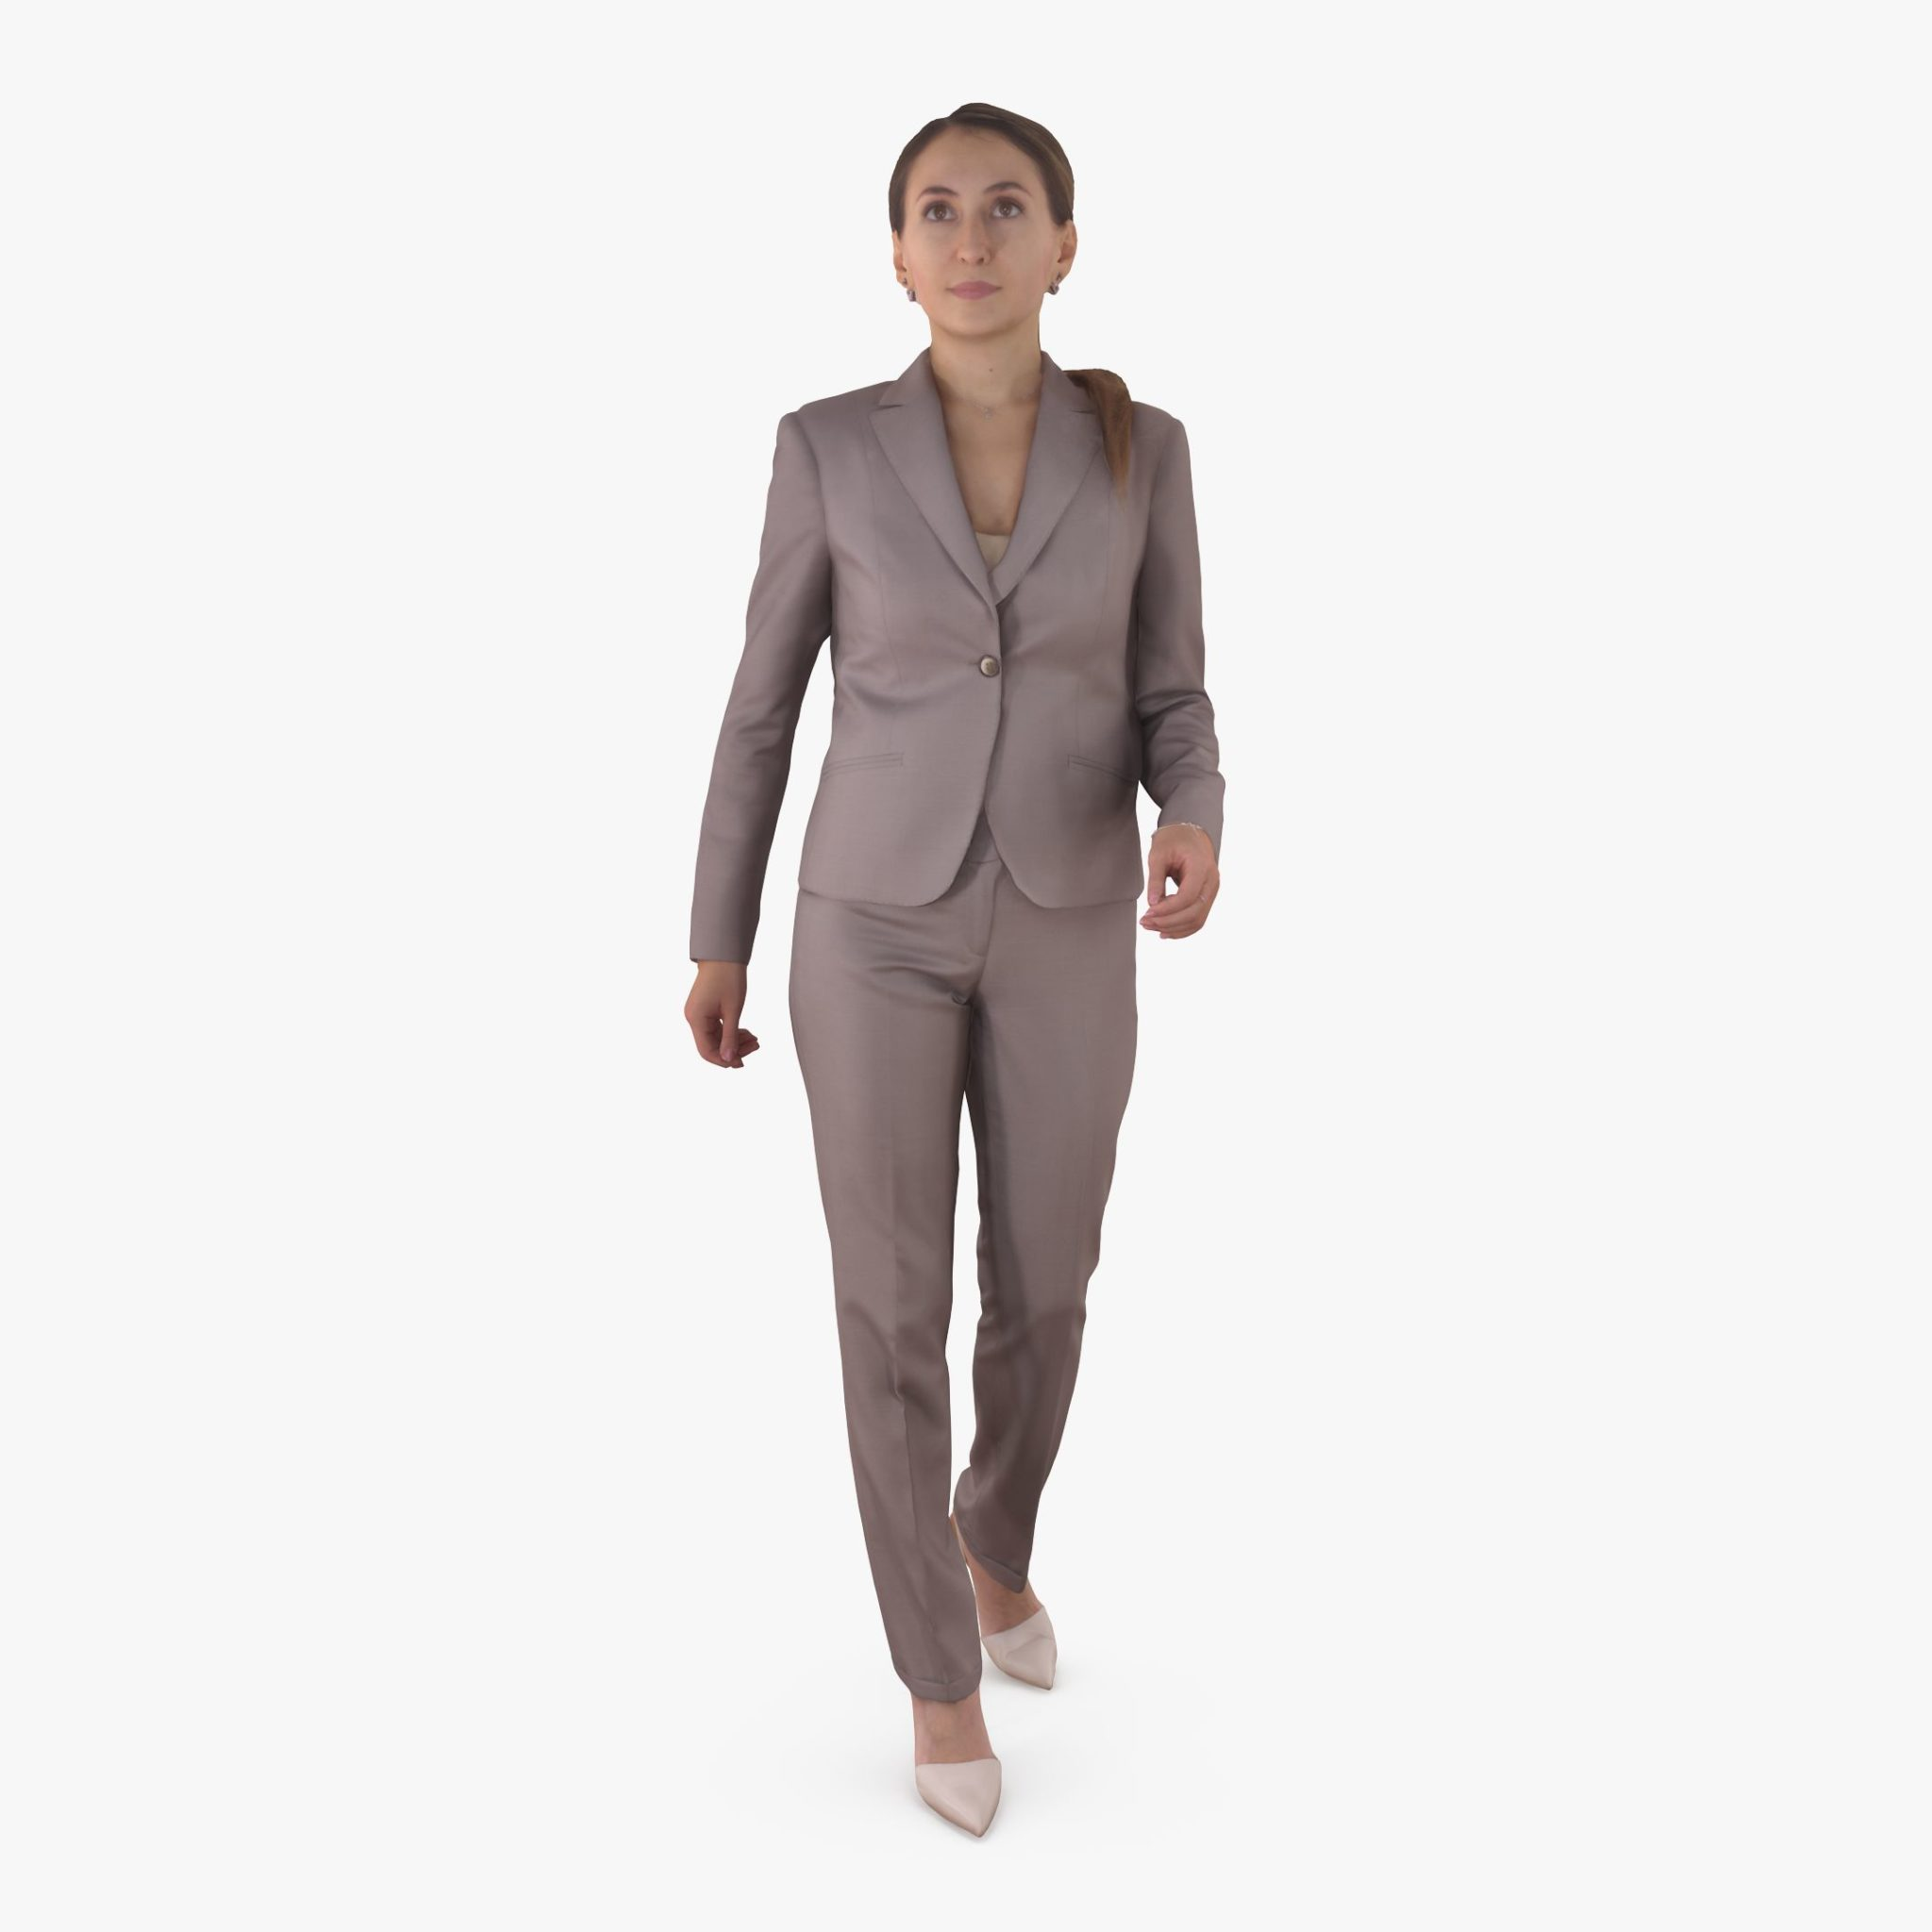 Business Woman Active 3D Model | 3DTree Scanning Studio